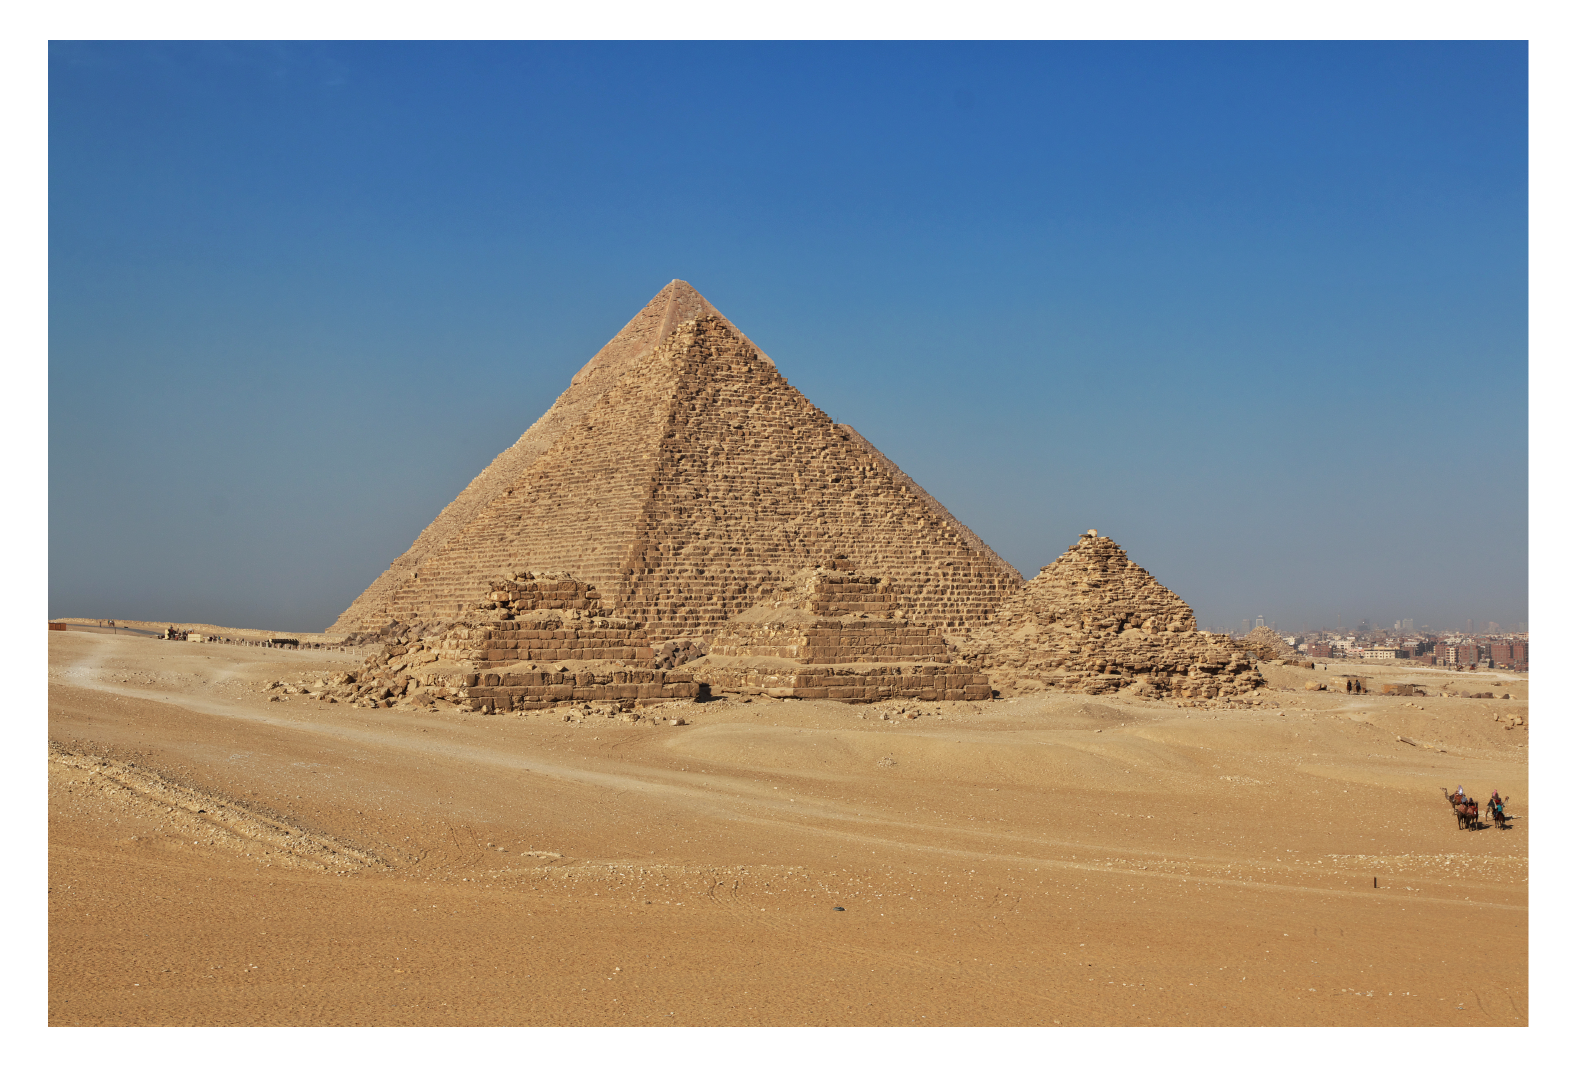 Egyptian pyramids have faces as triangles